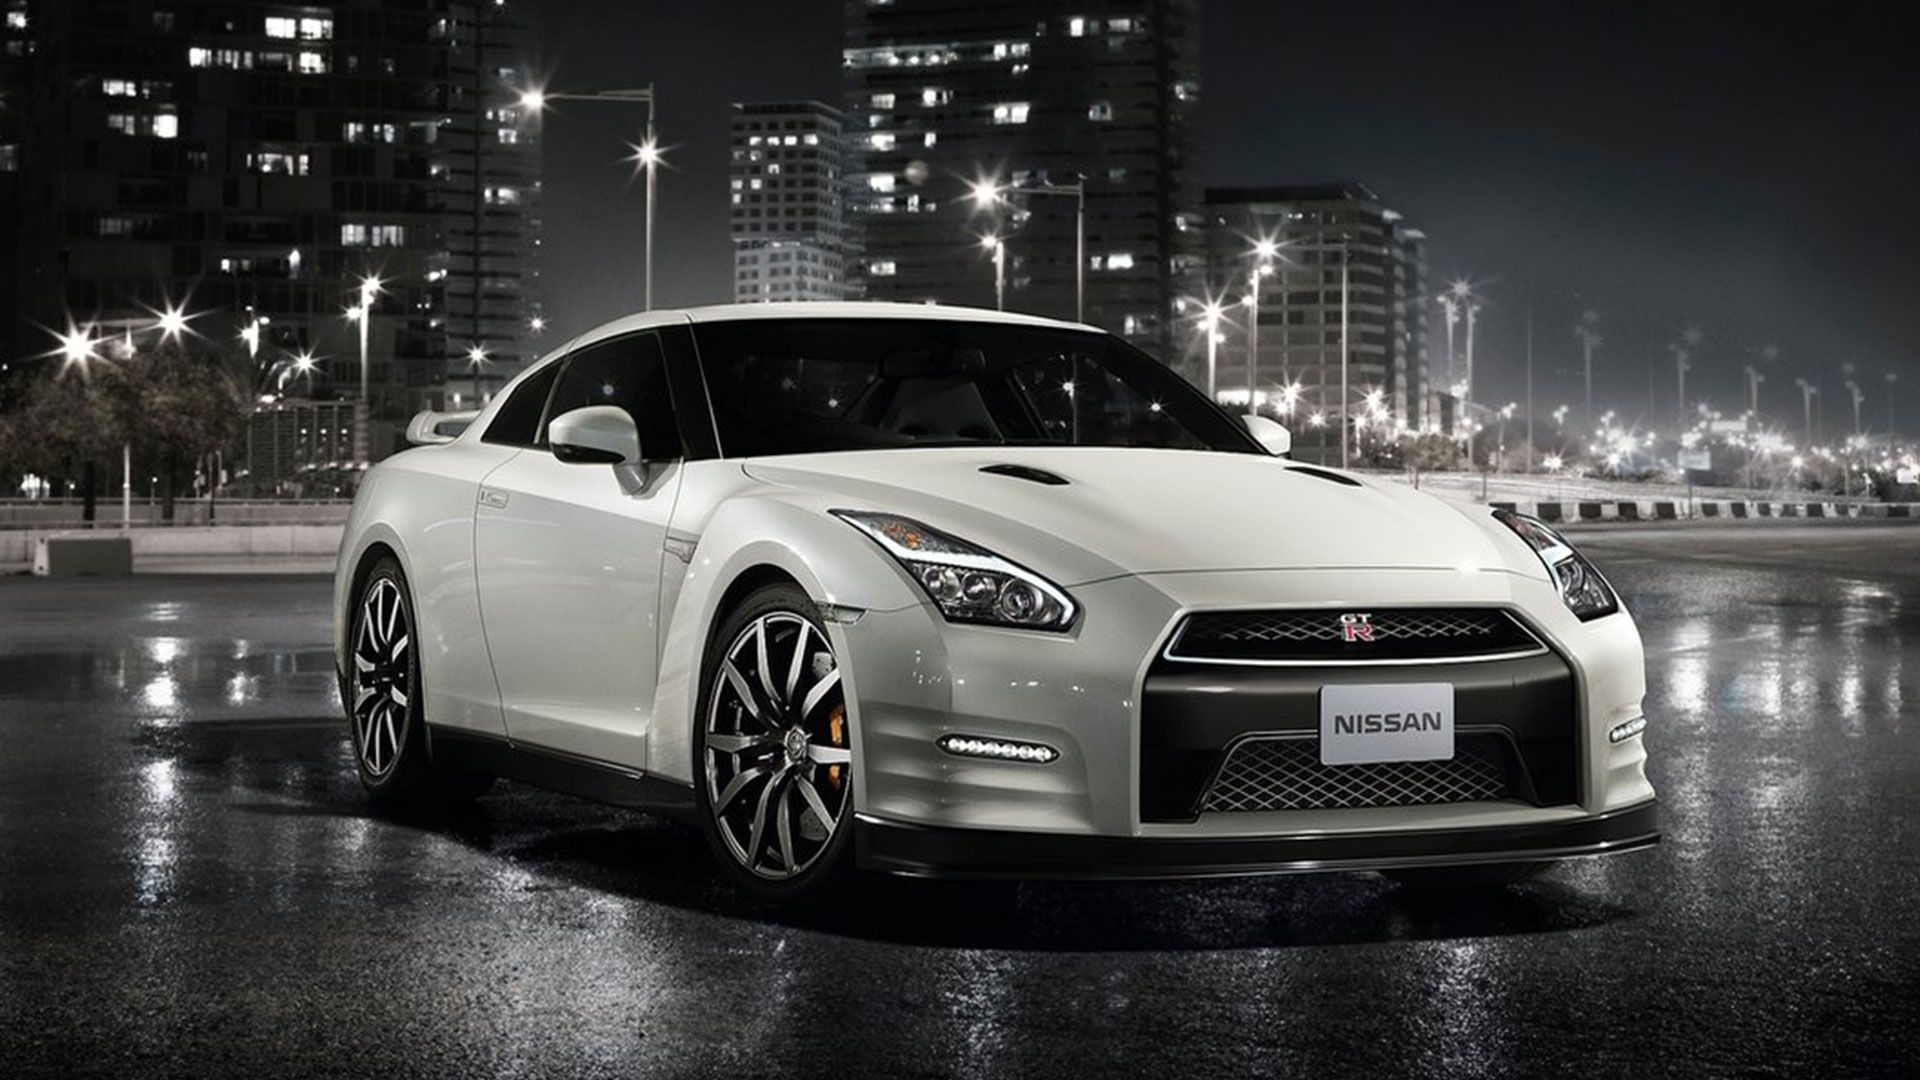 Nissan gt r 2015 wallpaper